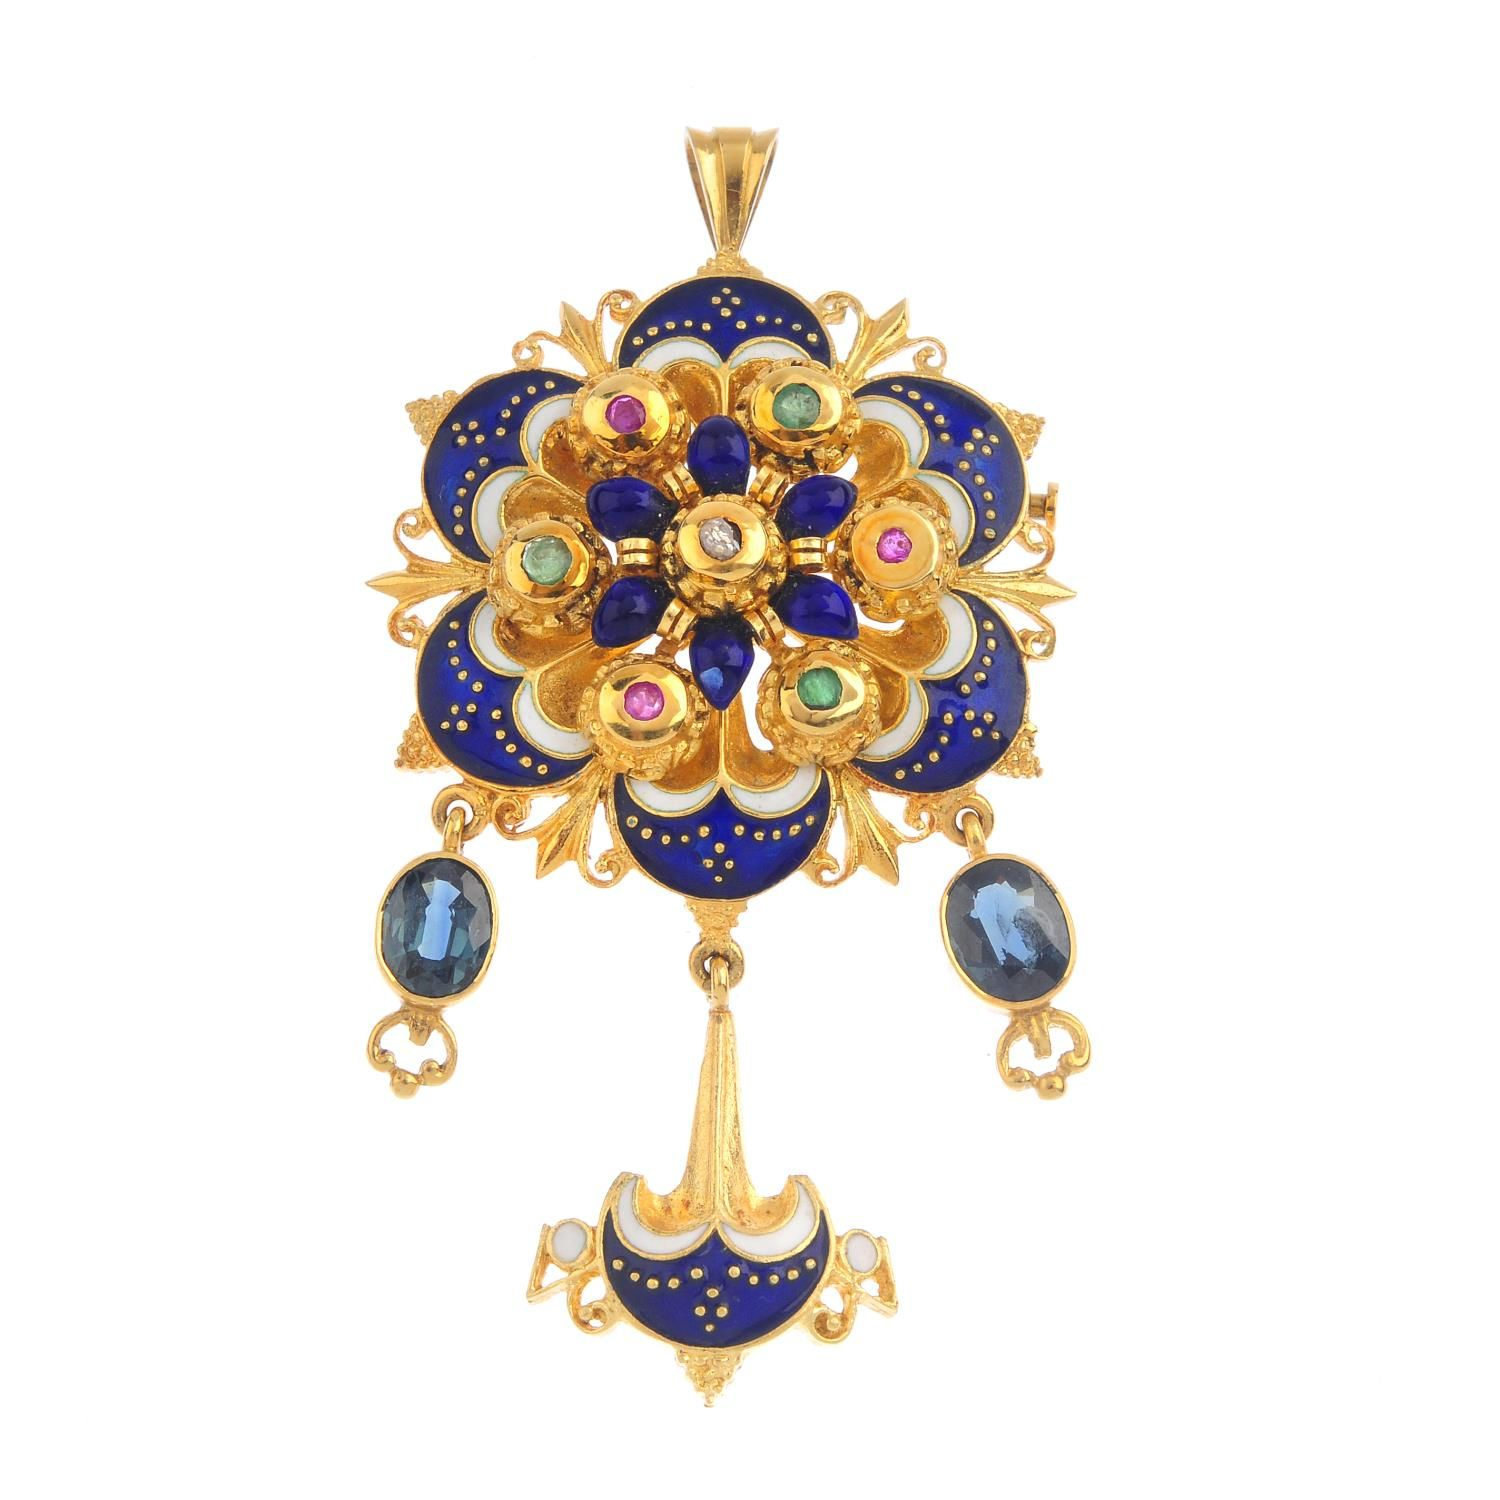 An enamel diamond and gemset pendant of stylised floral design